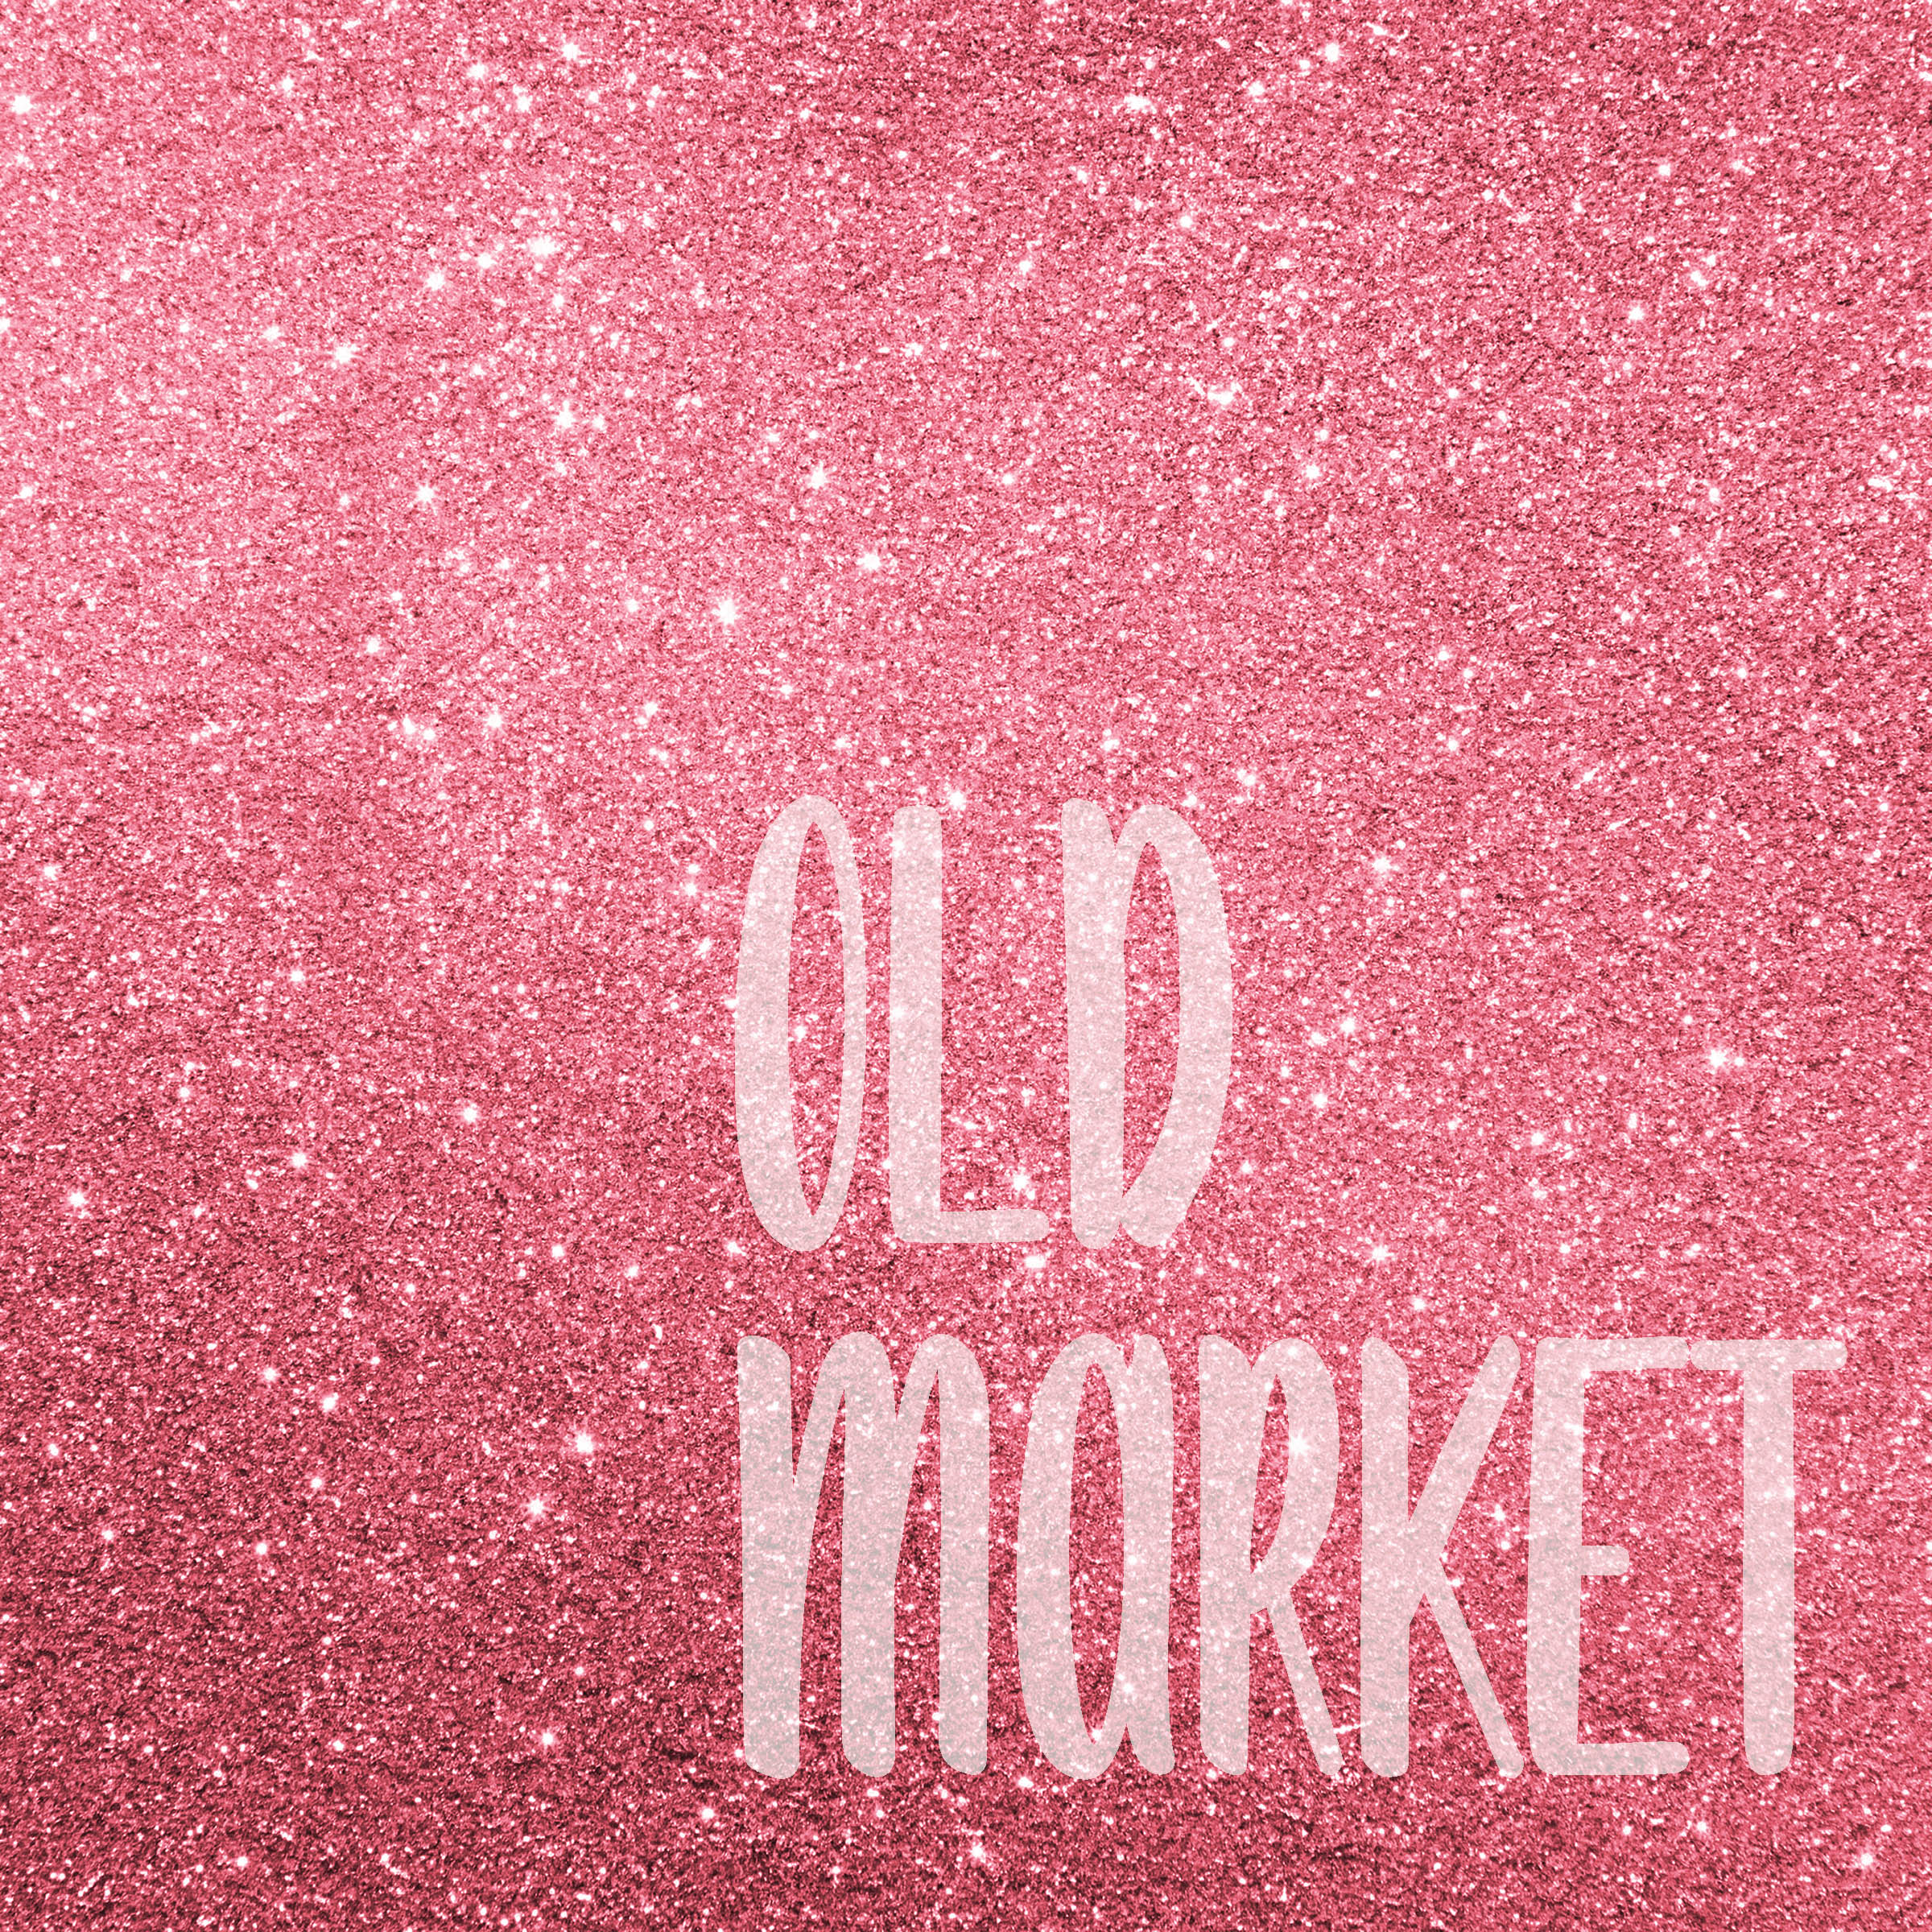 Valentine Glitter Digital Paper Textures Graphic Backgrounds By oldmarketdesigns - Image 3